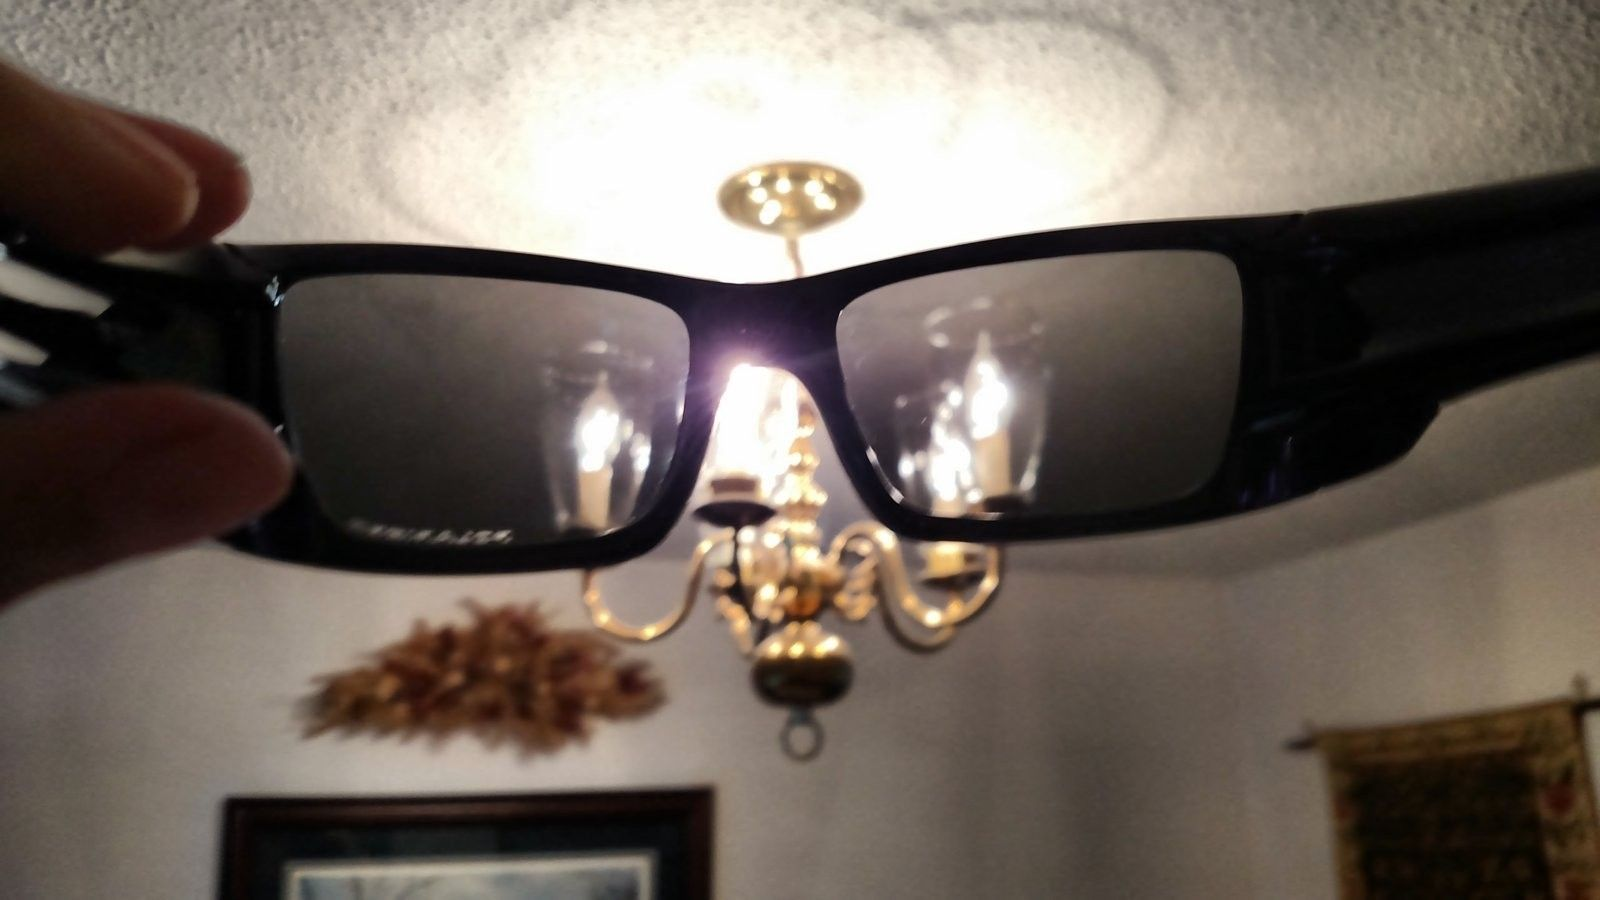 Stephen Murray Fuel Cell---New Condition w/case, Polarized - IMG_20160708_172736201.jpg